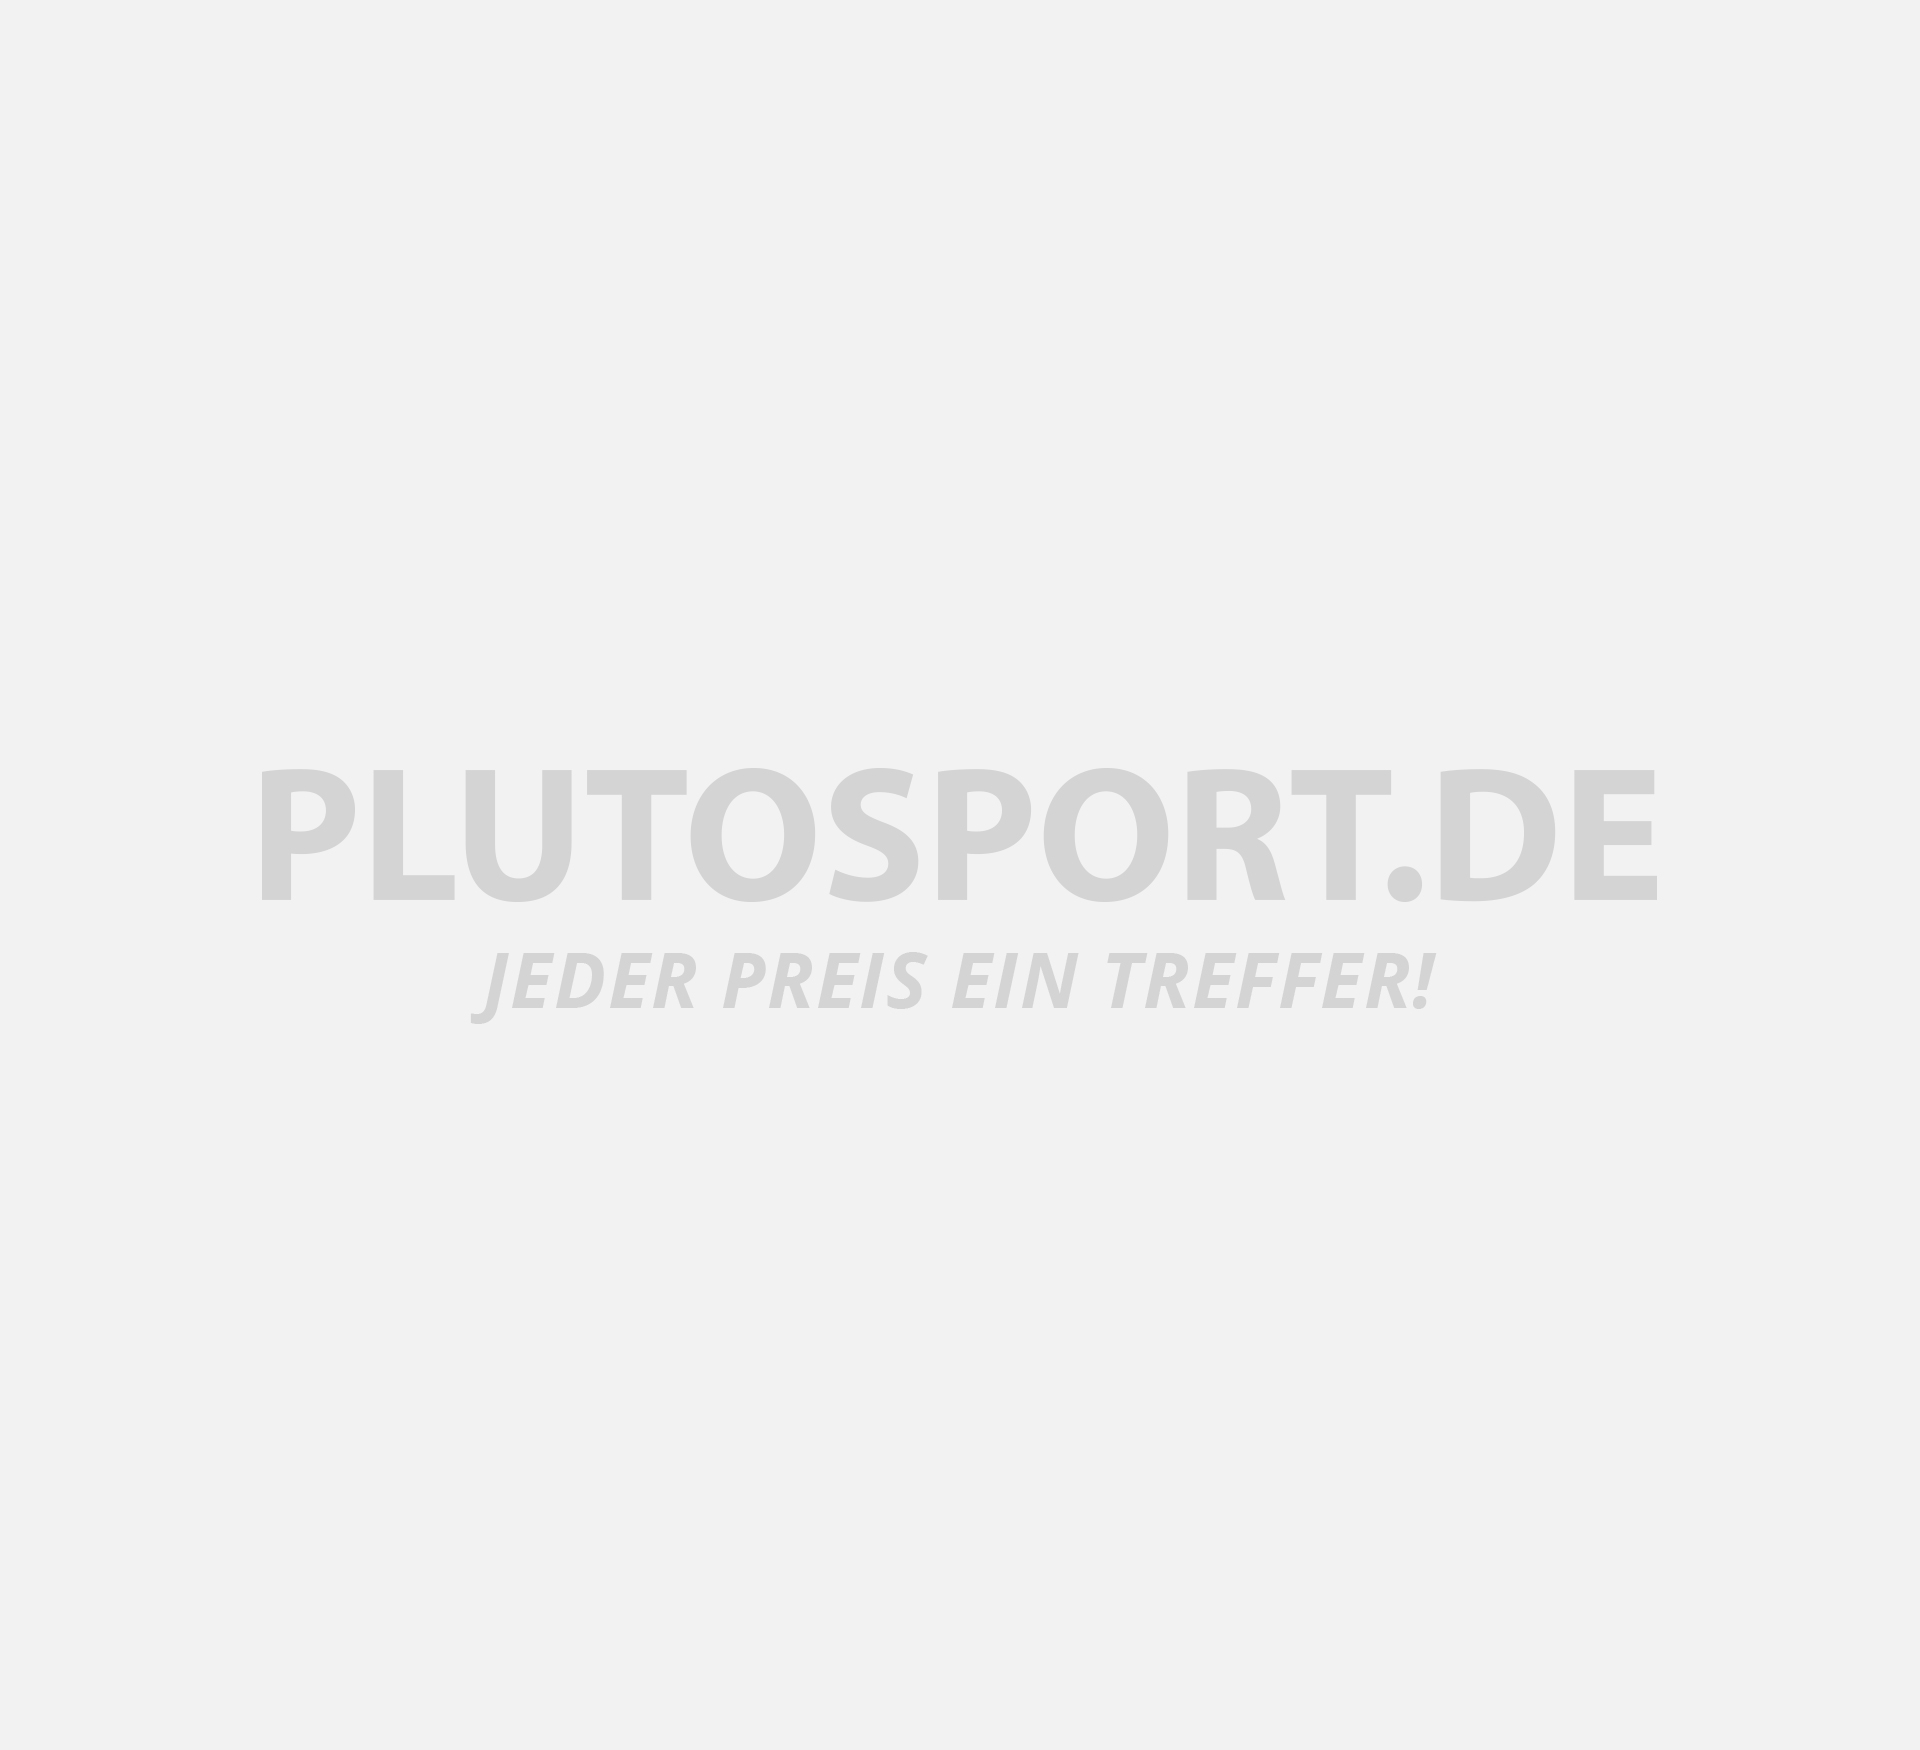 Adidas Uniforia League Fußball EK 2020